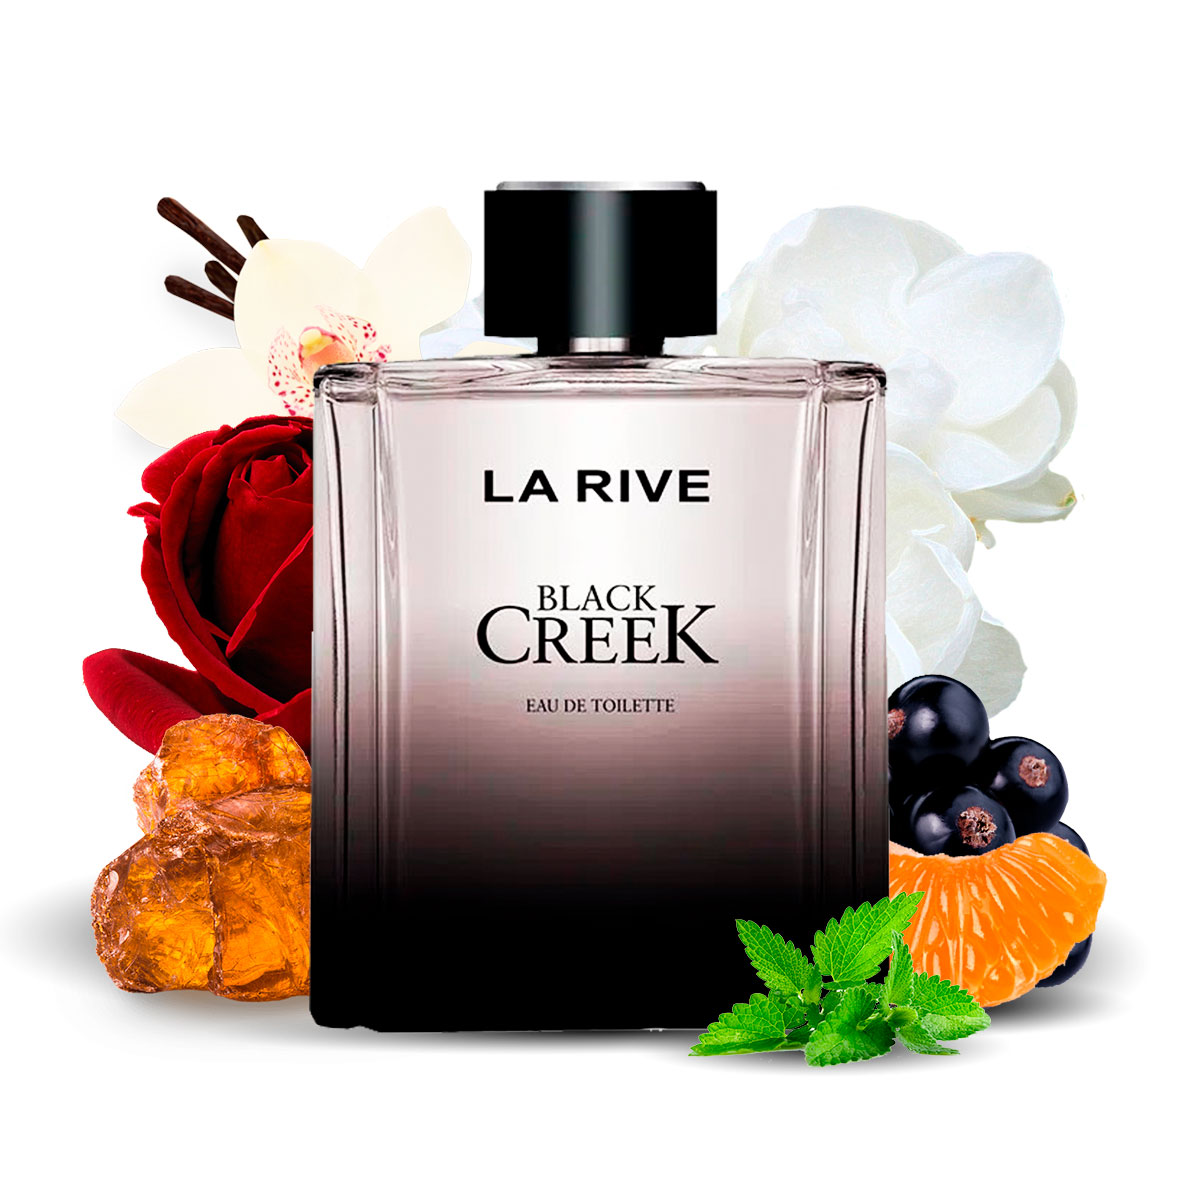 Perfume Importado Masculino Black Creek Edt 100ml La Rive